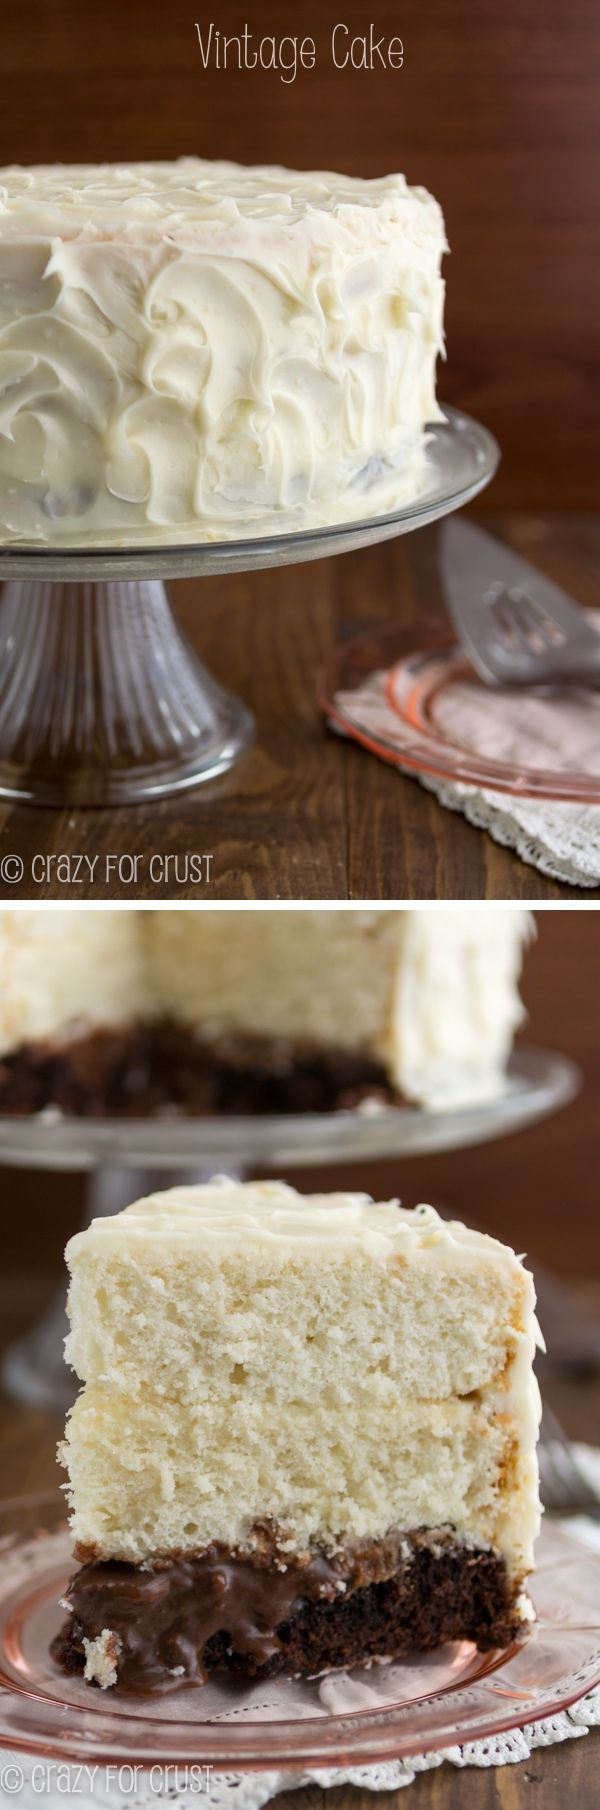 Cake With Icing Baked Inside : 25+ best ideas about Inside cake on Pinterest Surprise ...